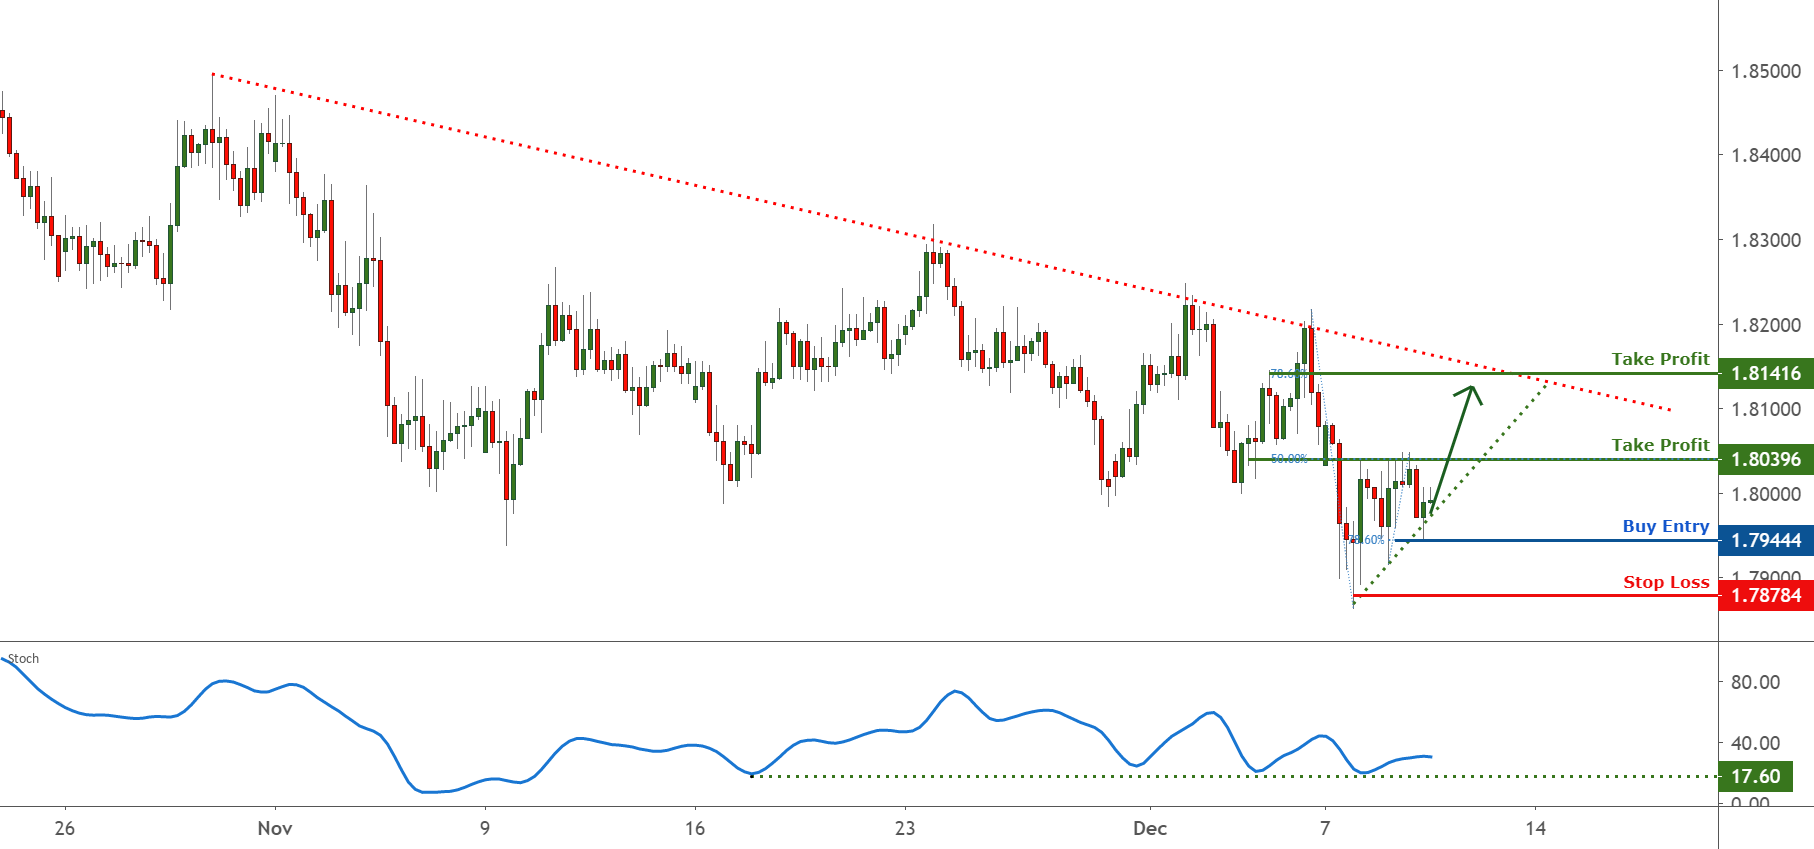 GBPAUD facing bullish pressure, room for upside! for FX:GBPAUD by FXCM